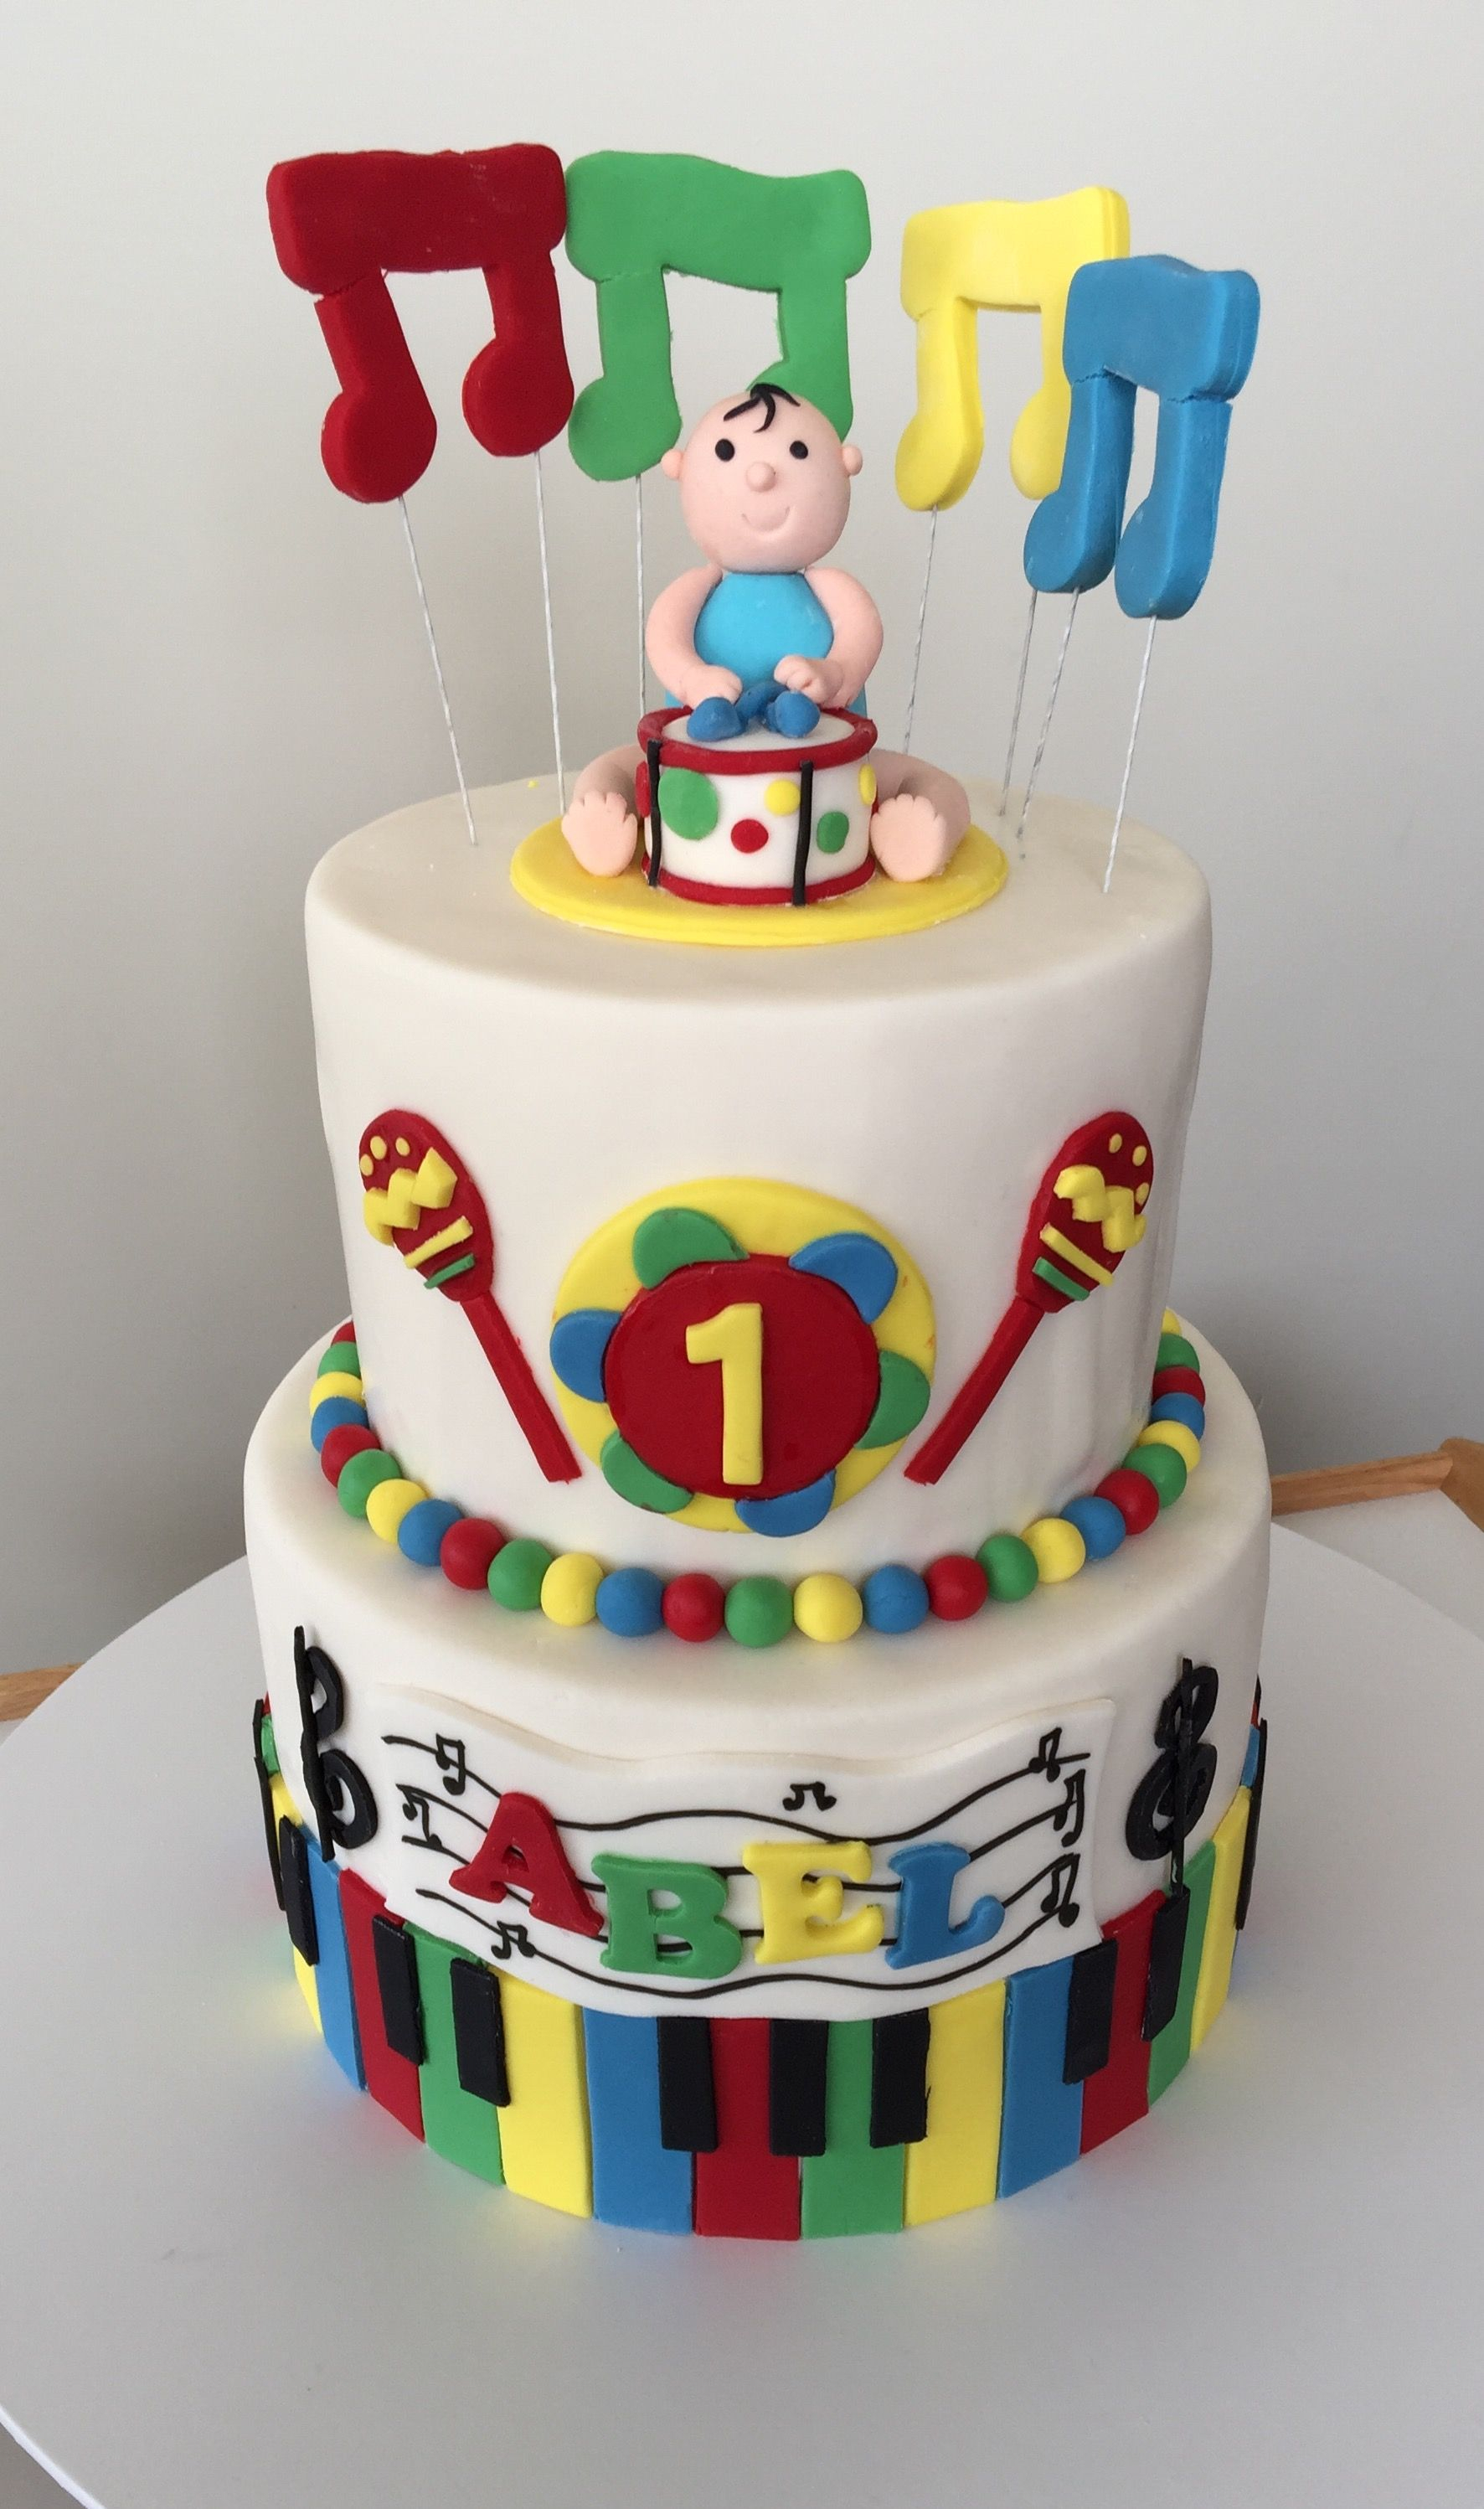 Music Birthday Cakes Musical Instrument Cake Birthday Pinterest Birthday Cake And